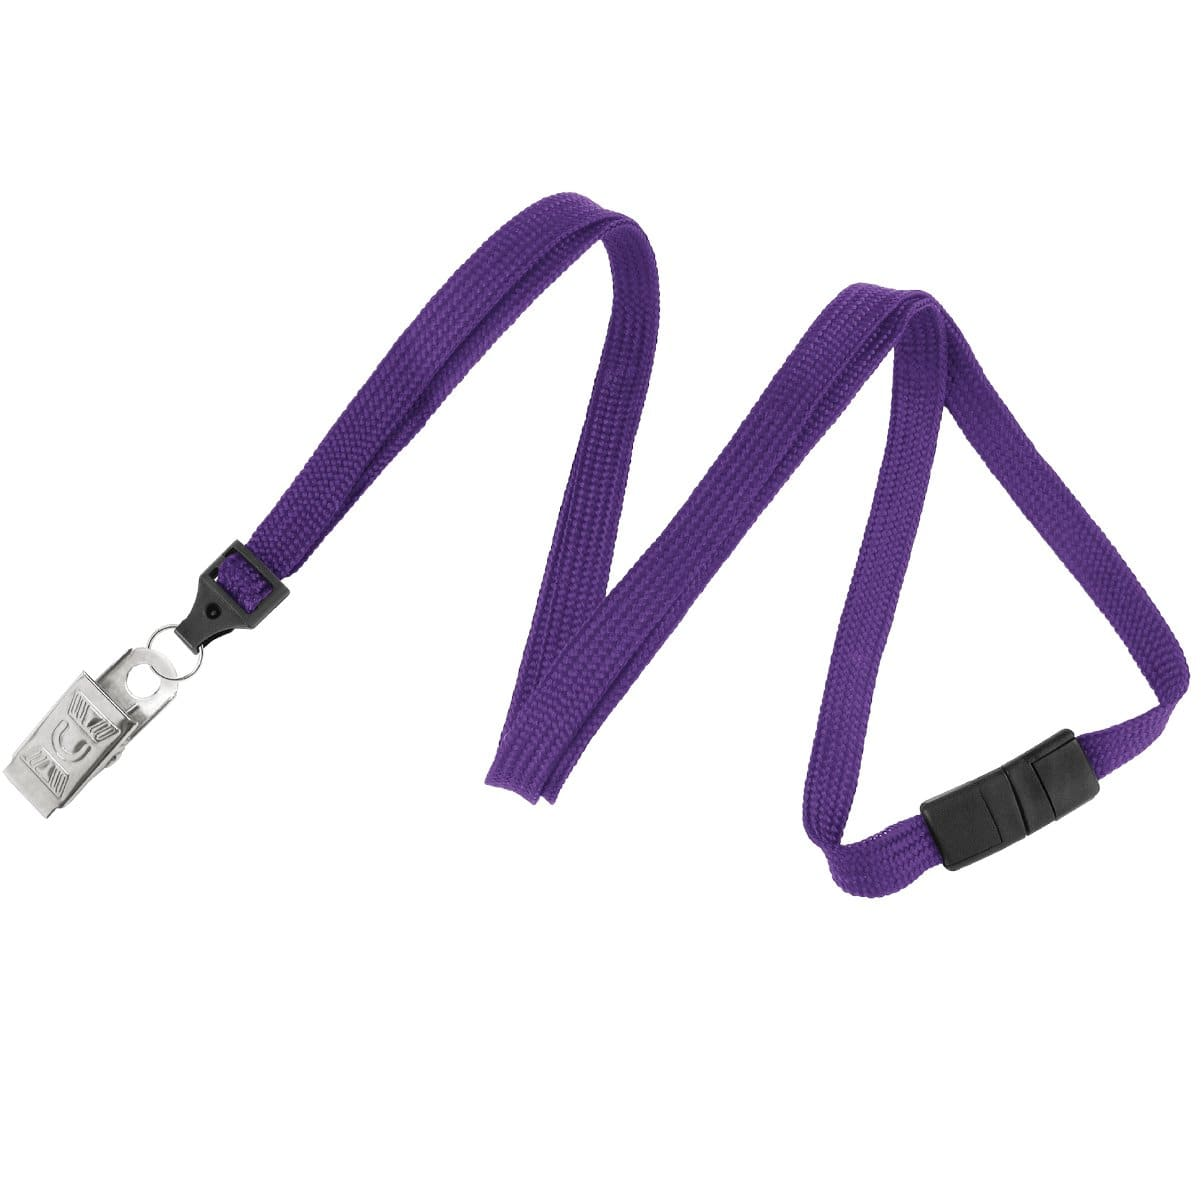 Breakaway Lanyard with Bulldog Clip (P/N 2137-600X)